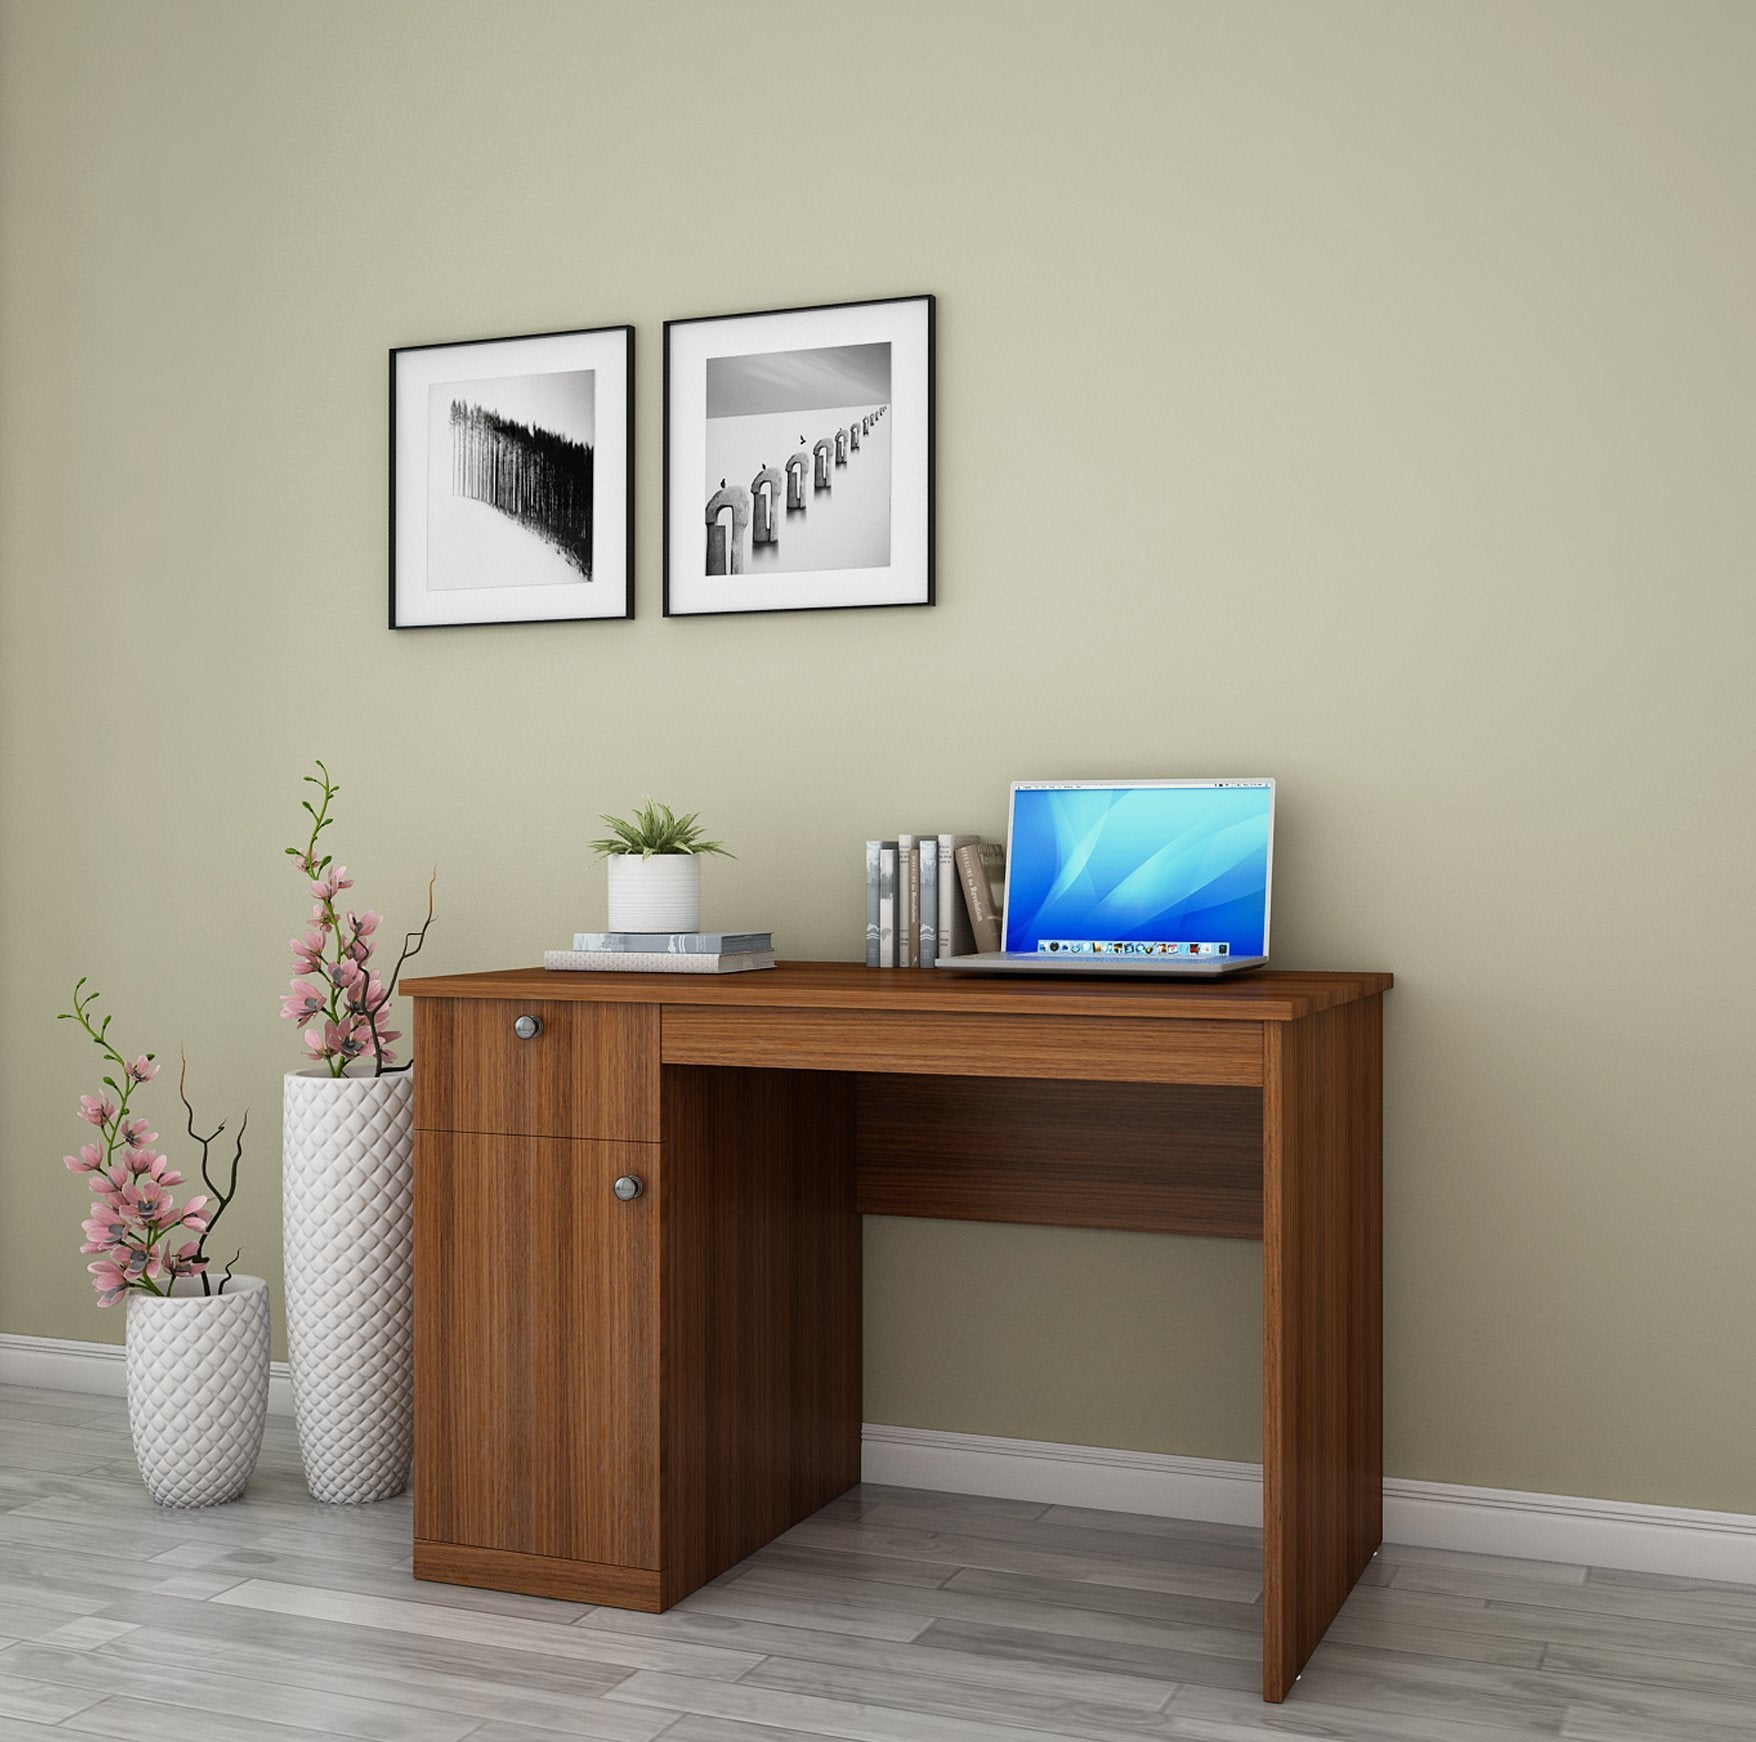 Classic Study Table in Walnut Colour by Dream Box